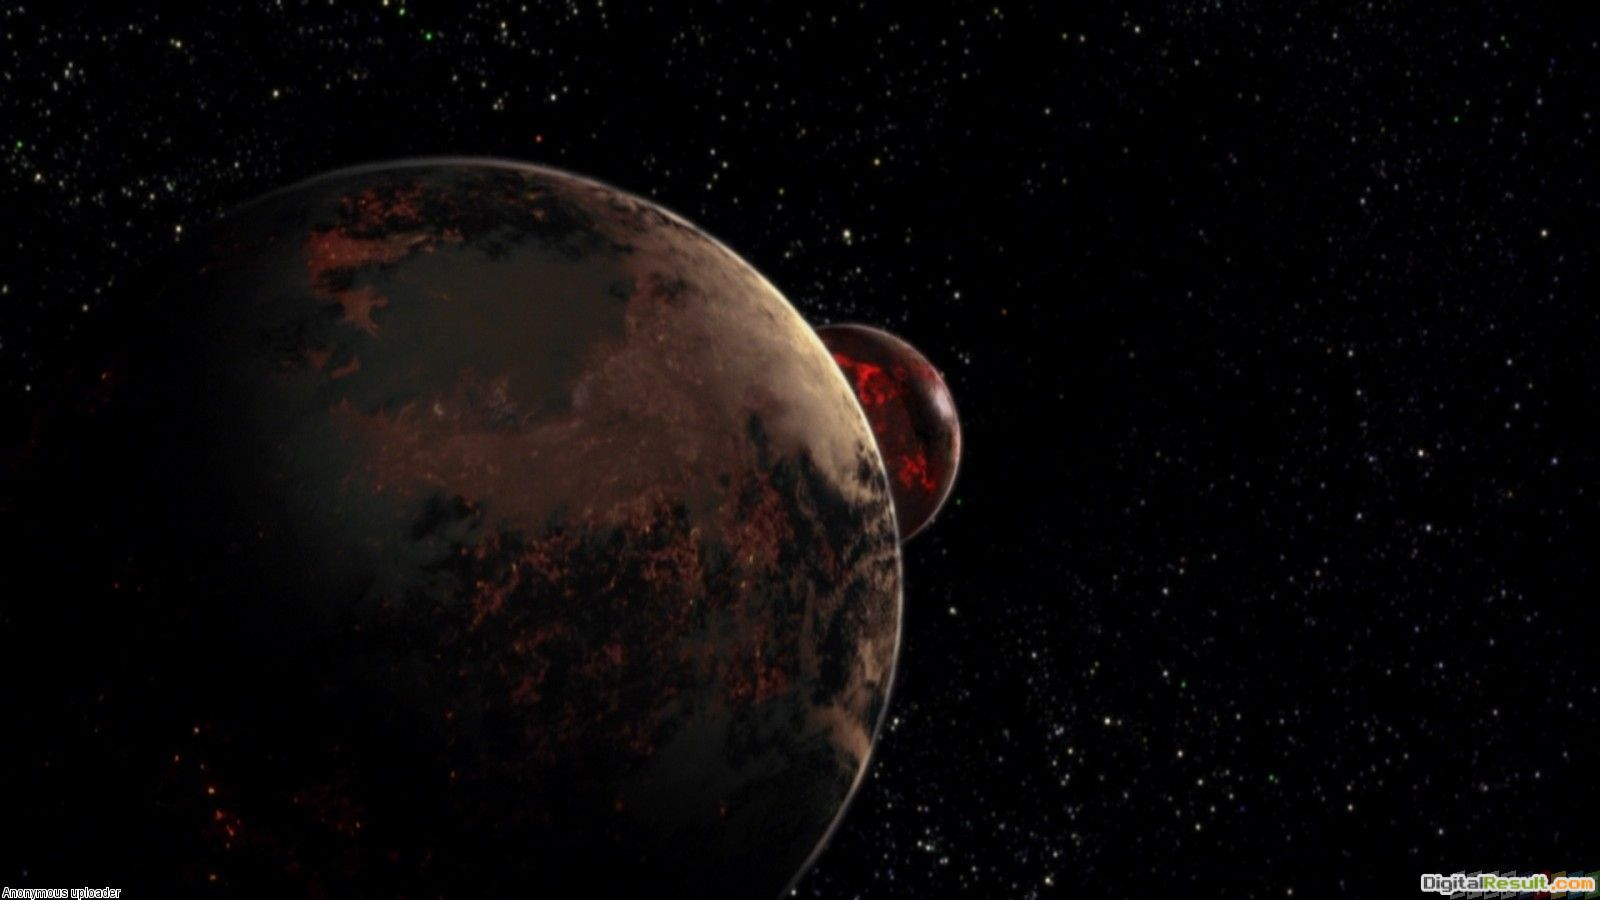 Space, red planet wallpaper #2368Open Walls 218